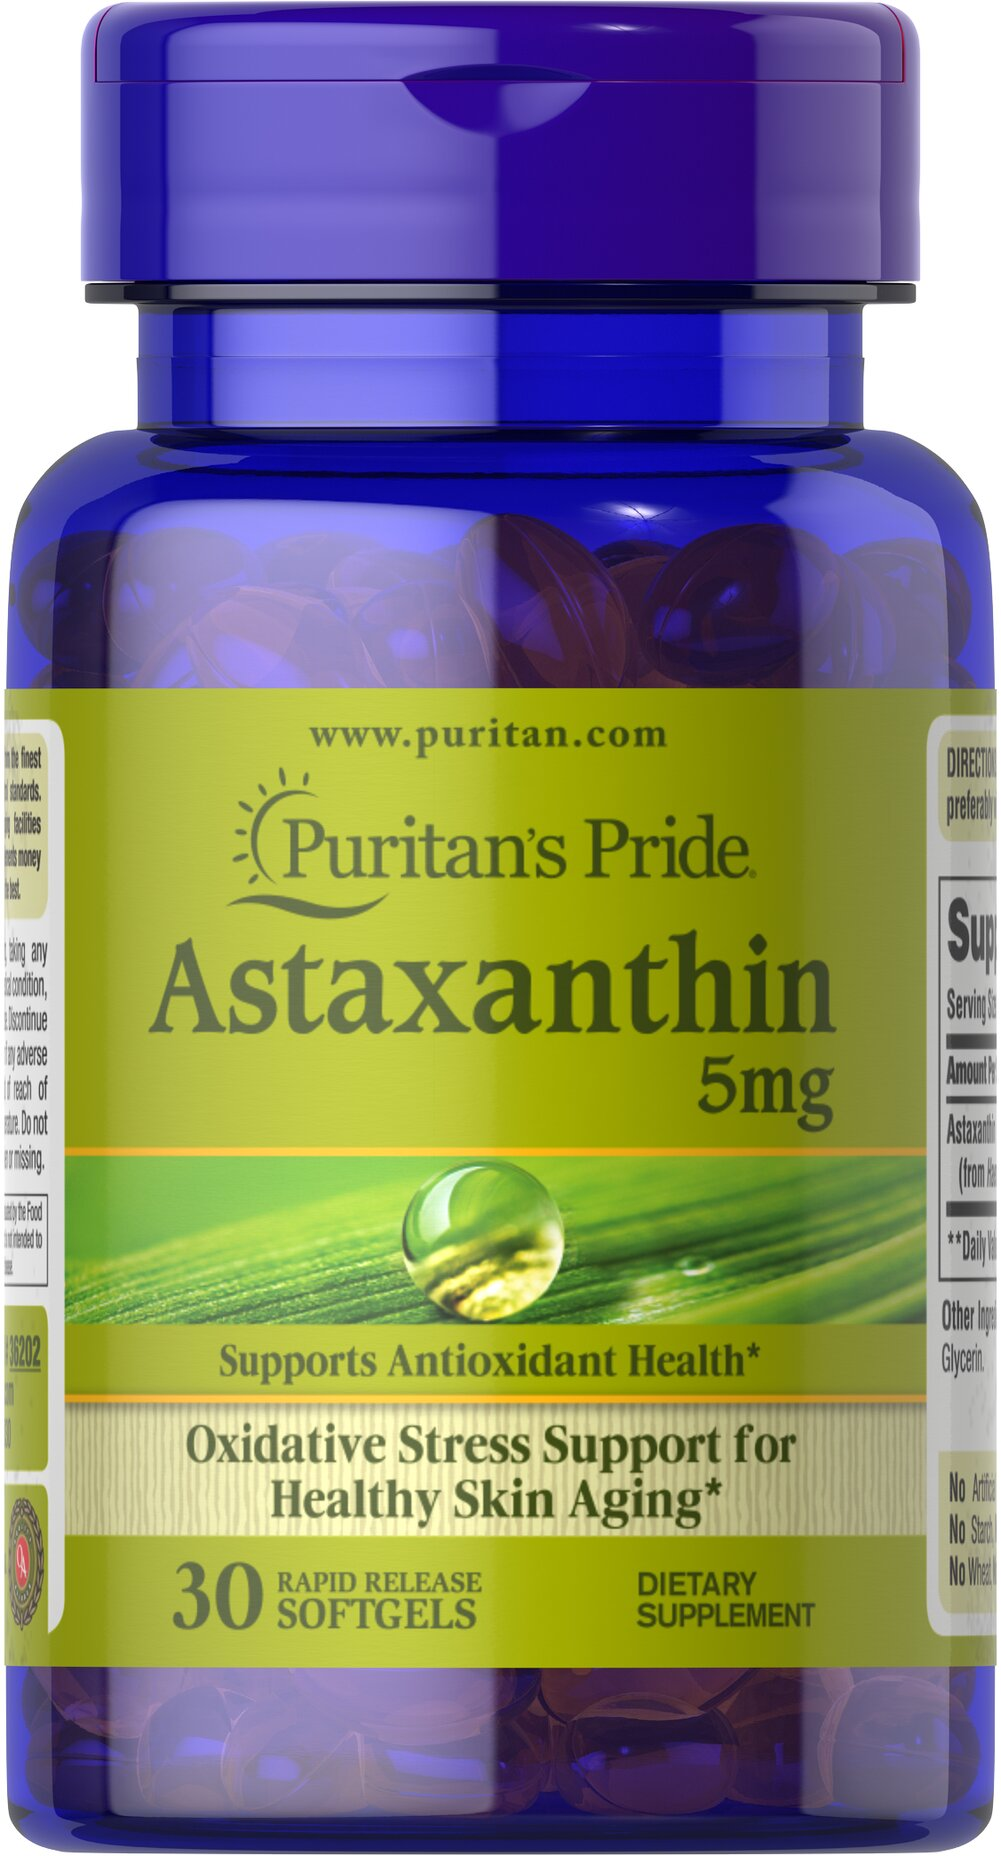 Astaxanthin 5 mg <p>Powerful Antioxidant**</p>  <p>Suited for Stressful Lifestyles**</p>    <p>Astaxanthin promotes antioxidant health, which helps fight the cell damaging free radicals that can lead to oxidative stress which may contribute to the premature aging of cells.**</p> 30 Softgels 5 mg $15.99